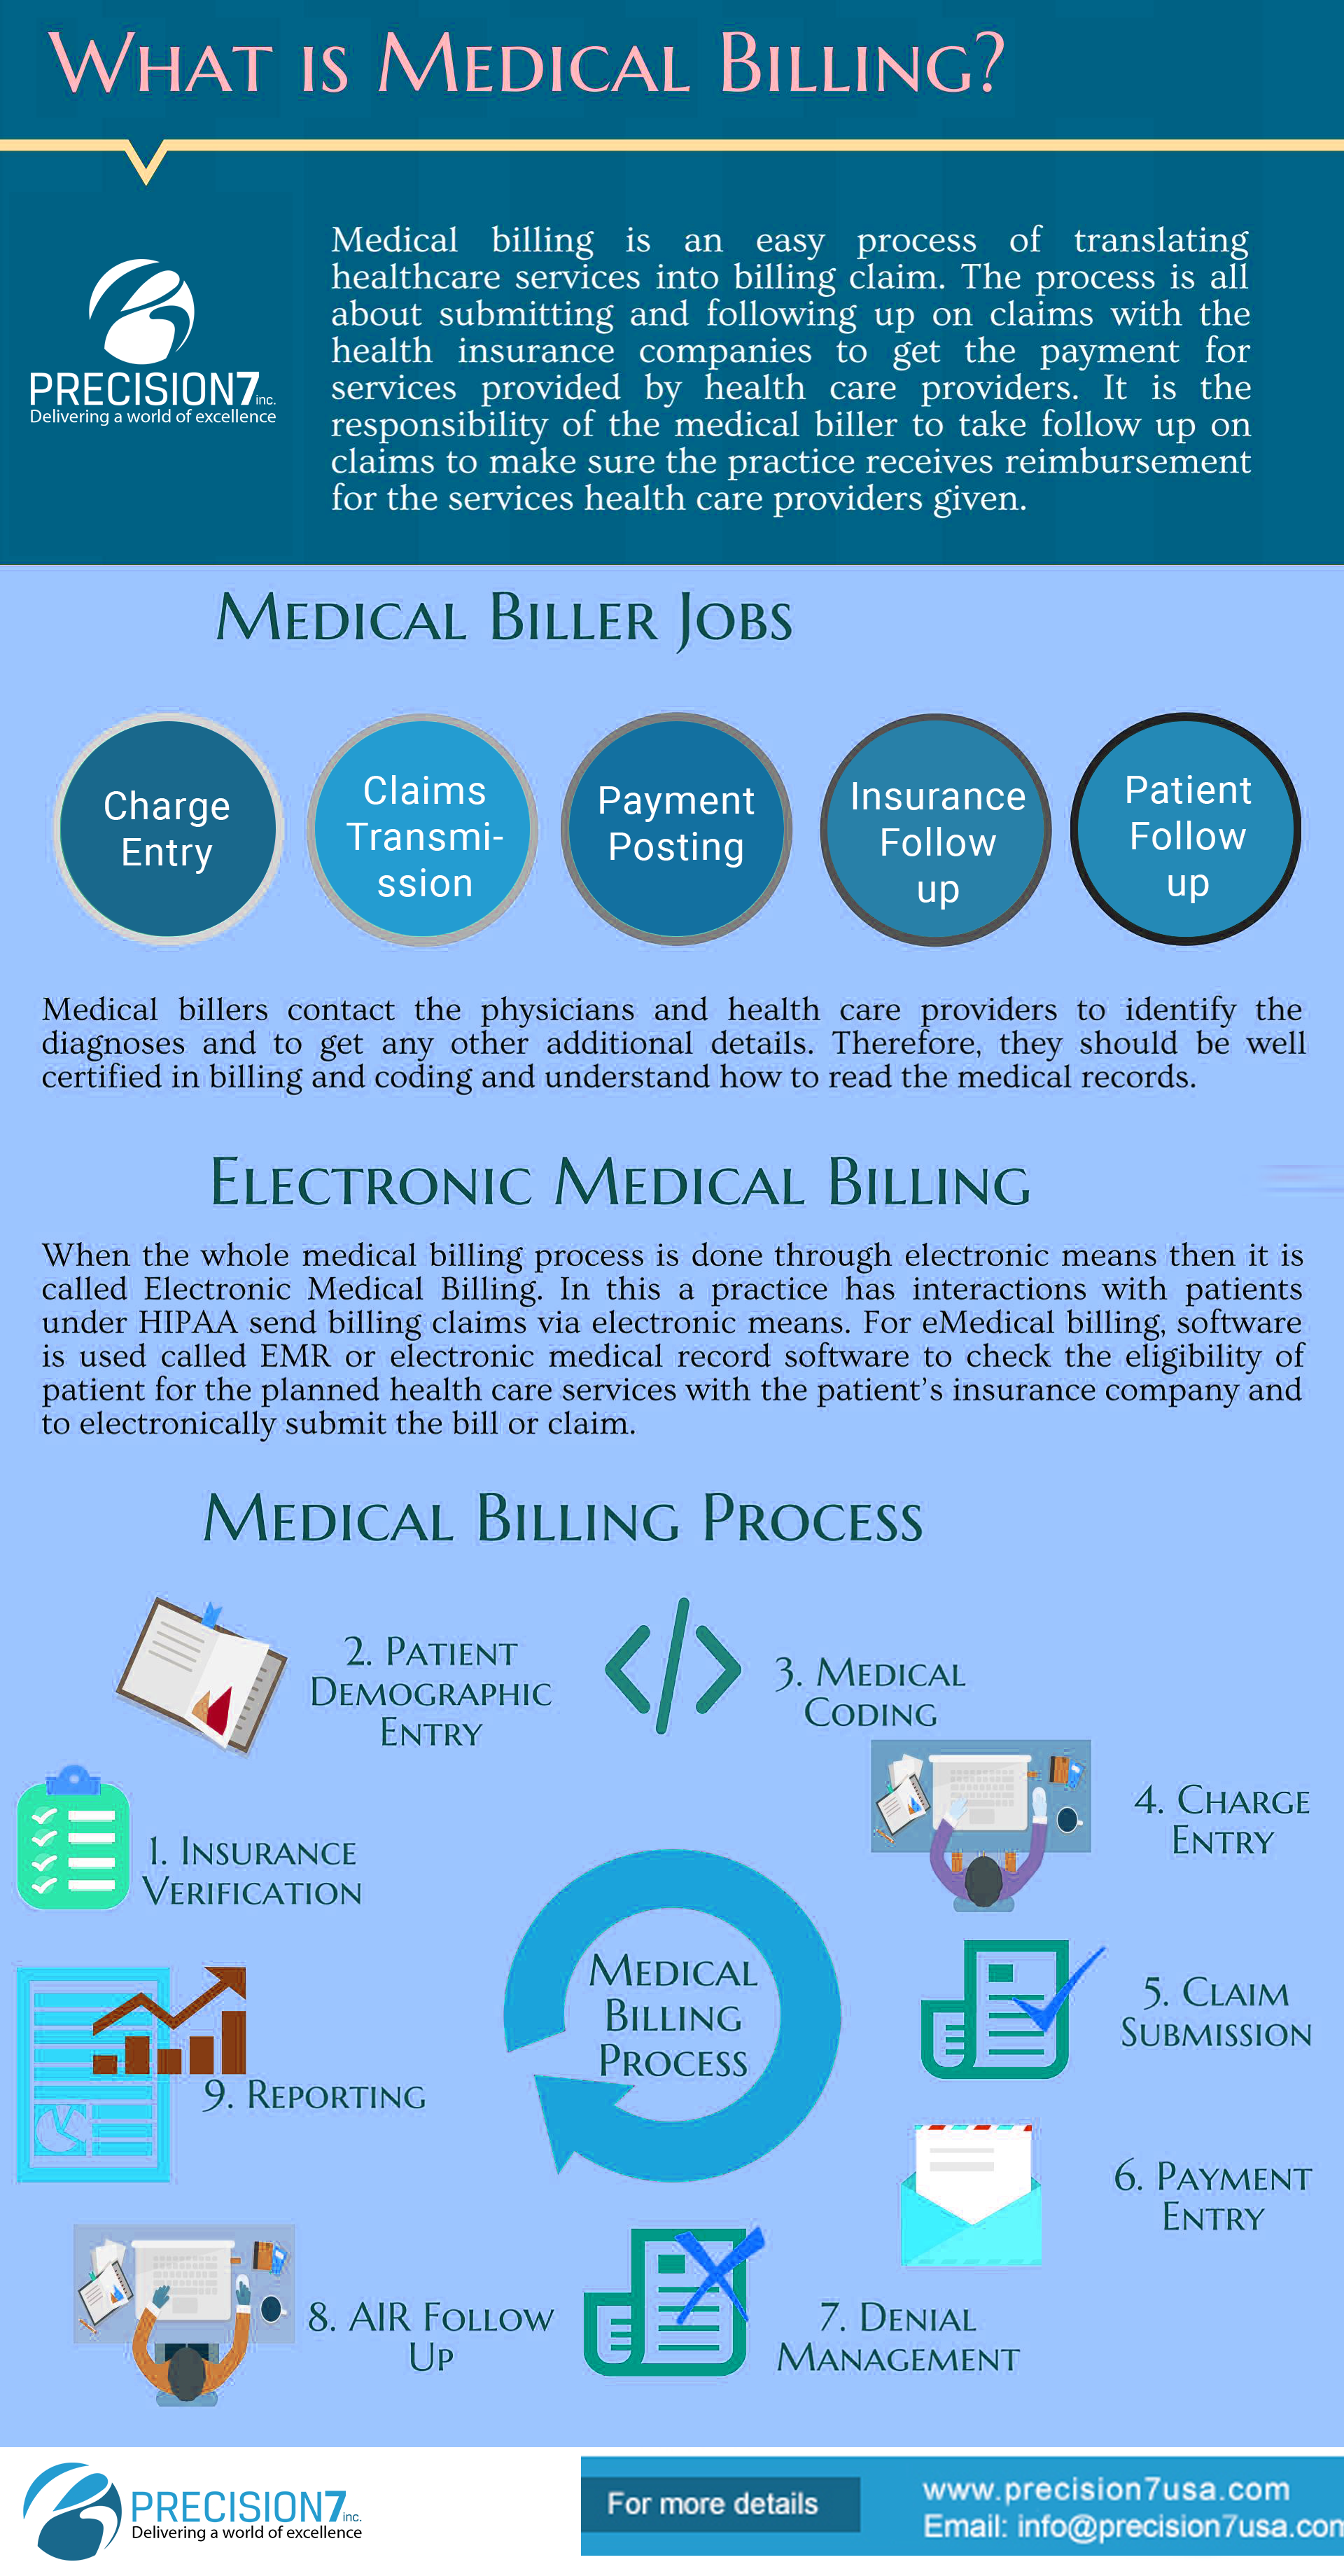 Medical Billing Facts Medicalbilling Ehr Precision7